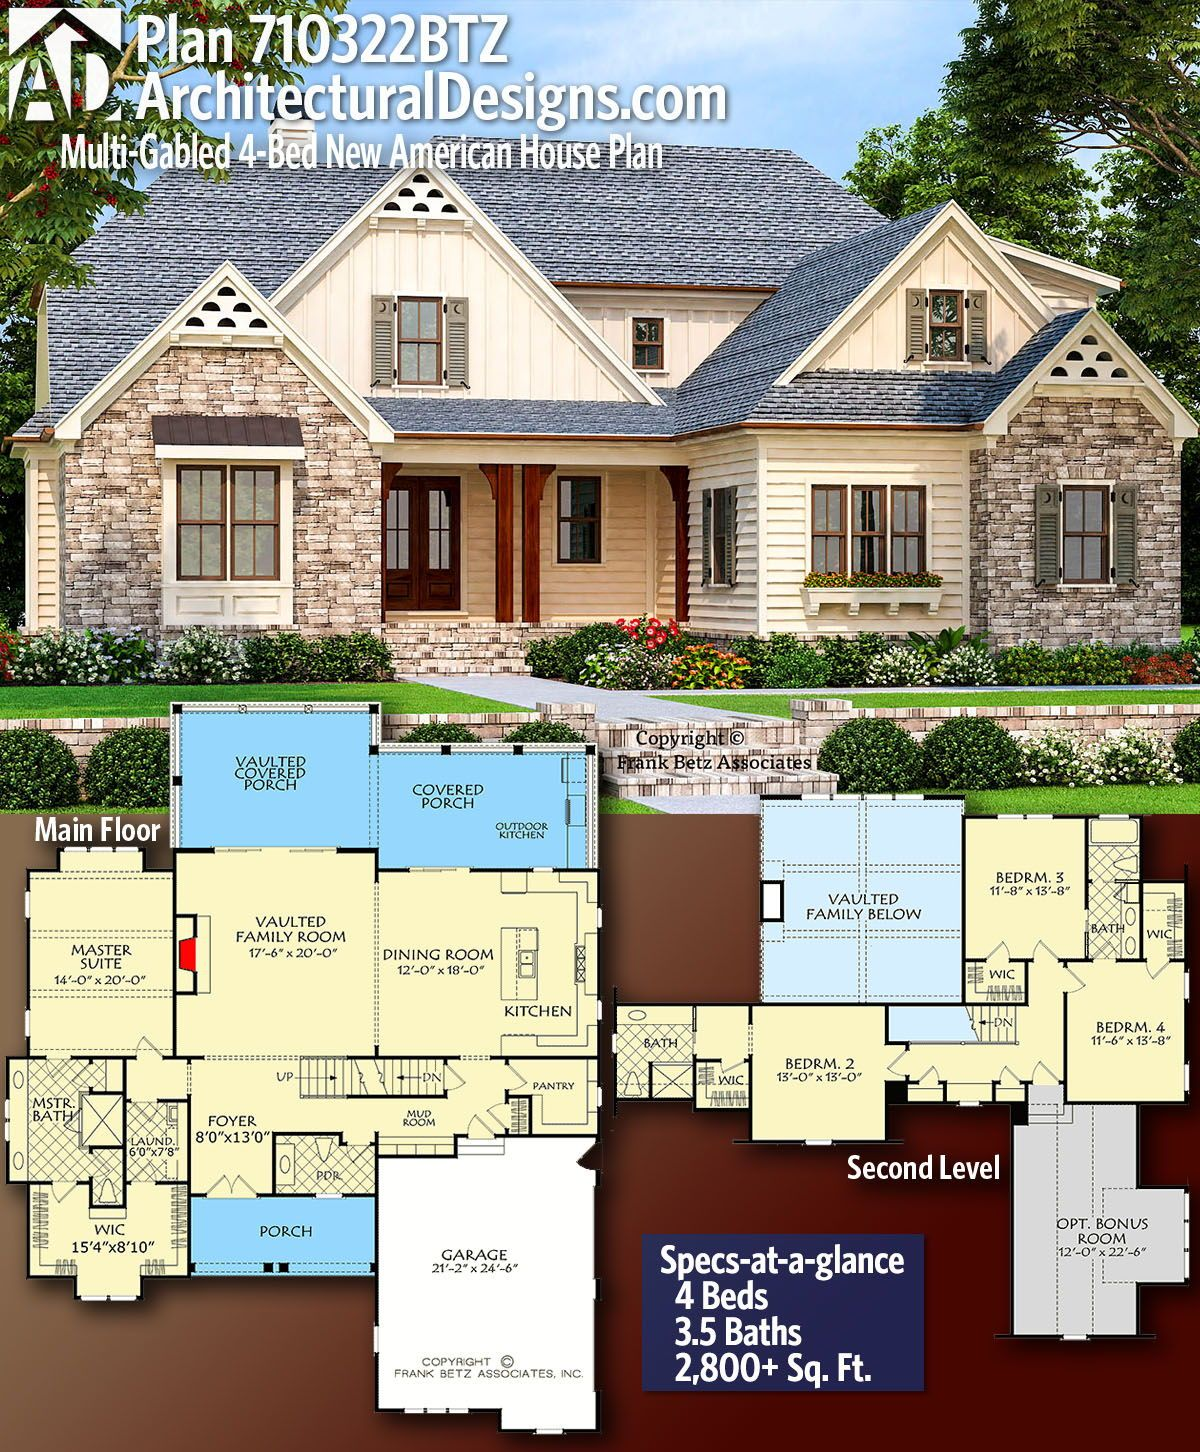 Plan 710322btz Multi Gabled 4 Bed New American House Plan Craftsman House Plans House Plans New House Plans